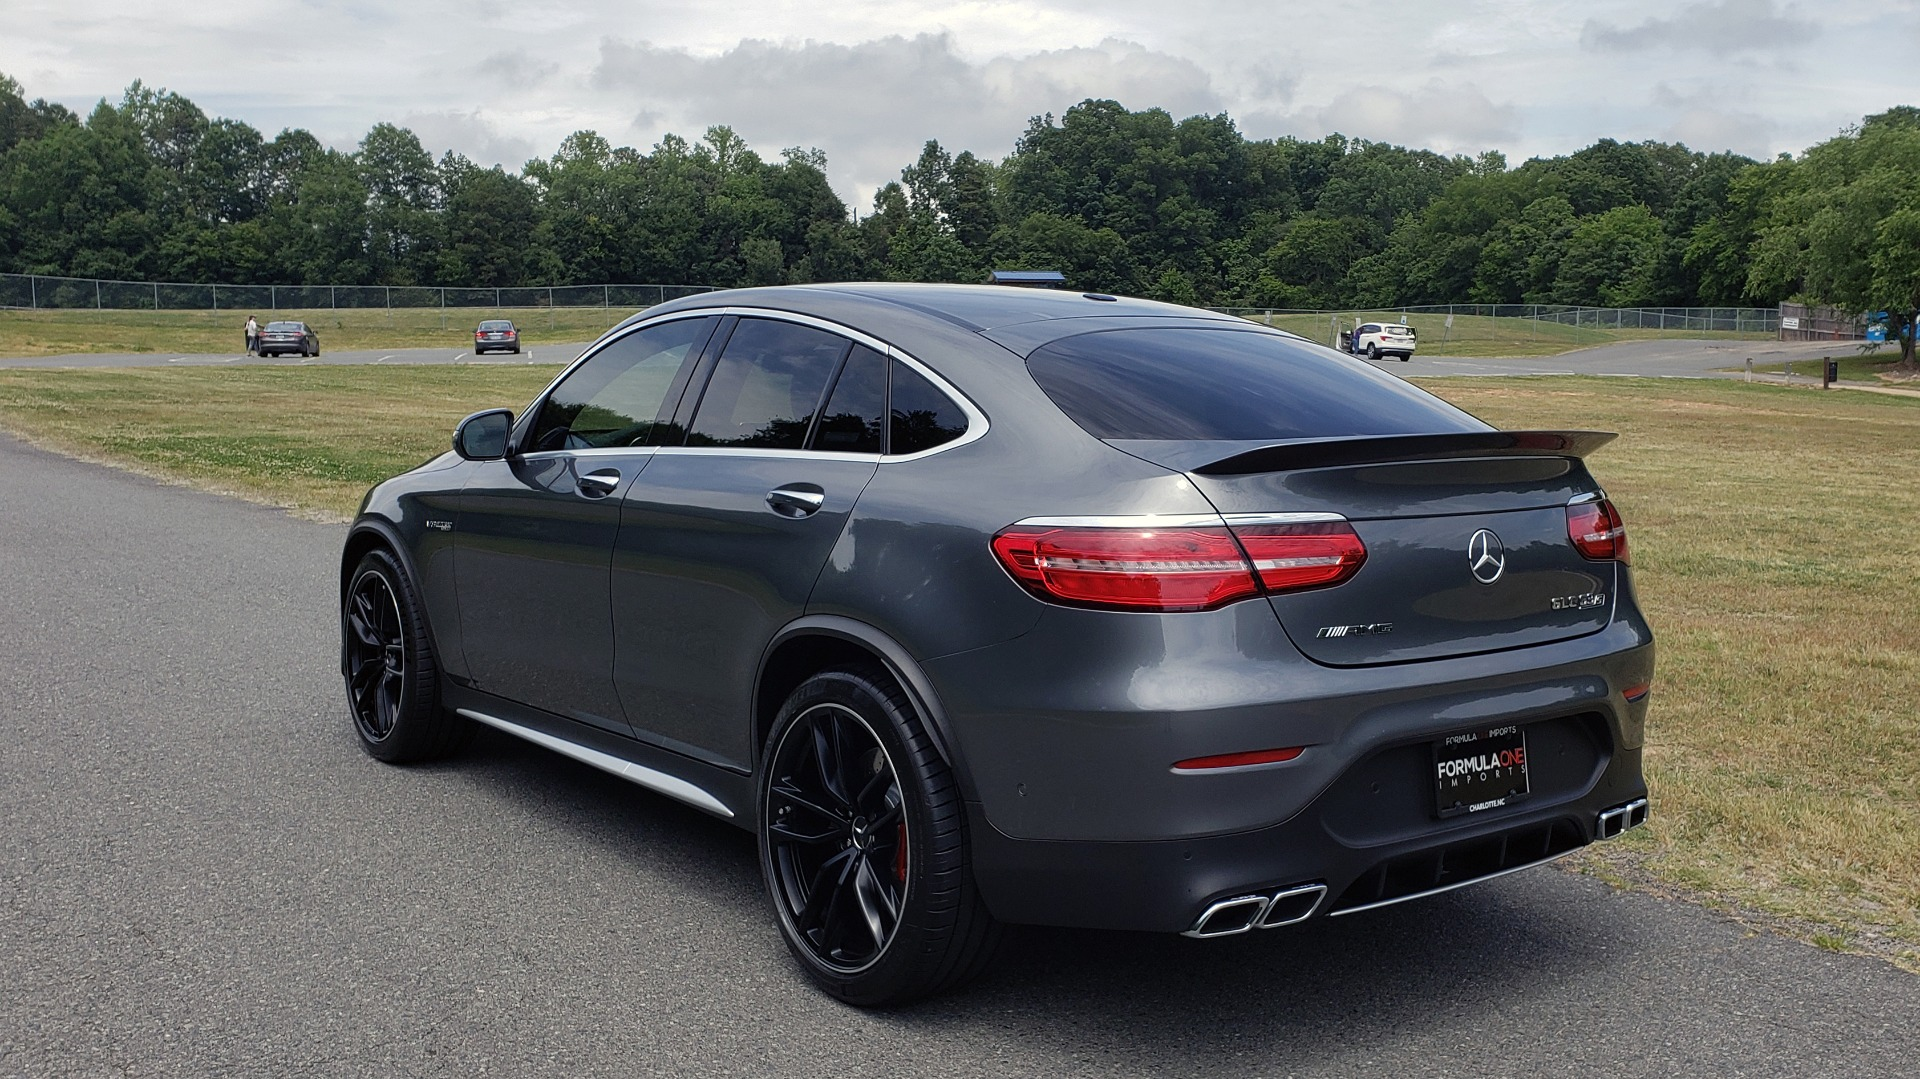 Used 2019 Mercedes-Benz GLC AMG 63 S 4MATIC COUPE / NAV / TRACK PACE APP / AMG PERF EXH / MULTIMEDIA for sale Sold at Formula Imports in Charlotte NC 28227 4